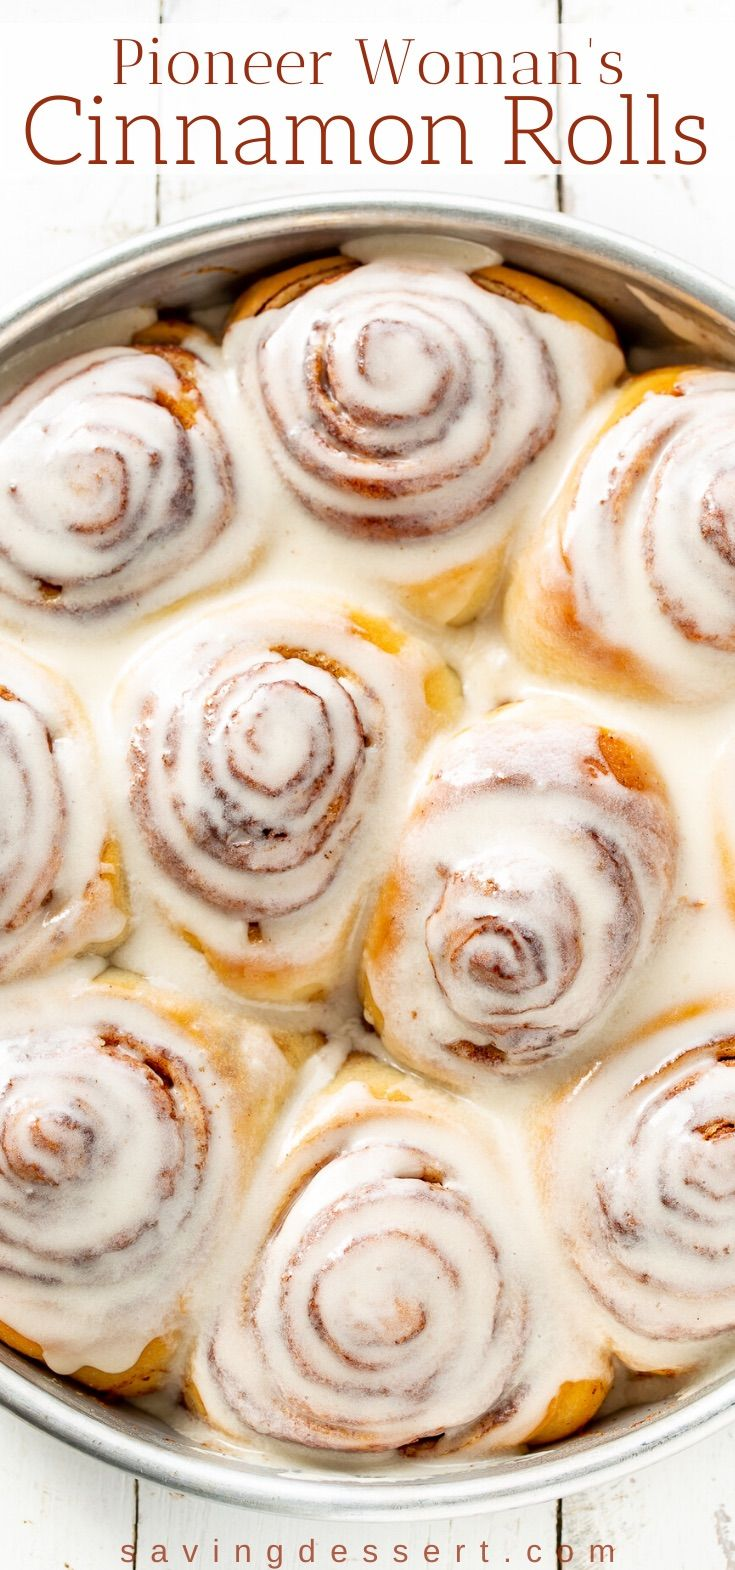 Pioneer Woman's Cinnamon Rolls with maple frosting. This delicious recipe makes a bunch of soft, tender, buttery sweet rolls so feel free to share with family and friends! #pioneerwomanscinnamonrolls #cinnamonrolls #reescinnamonrolls #baking #brunch #breakfast #yeastrolls #homemadecinnamonrolls #bestcinnamonrolls #makeaheadcinnamonrolls